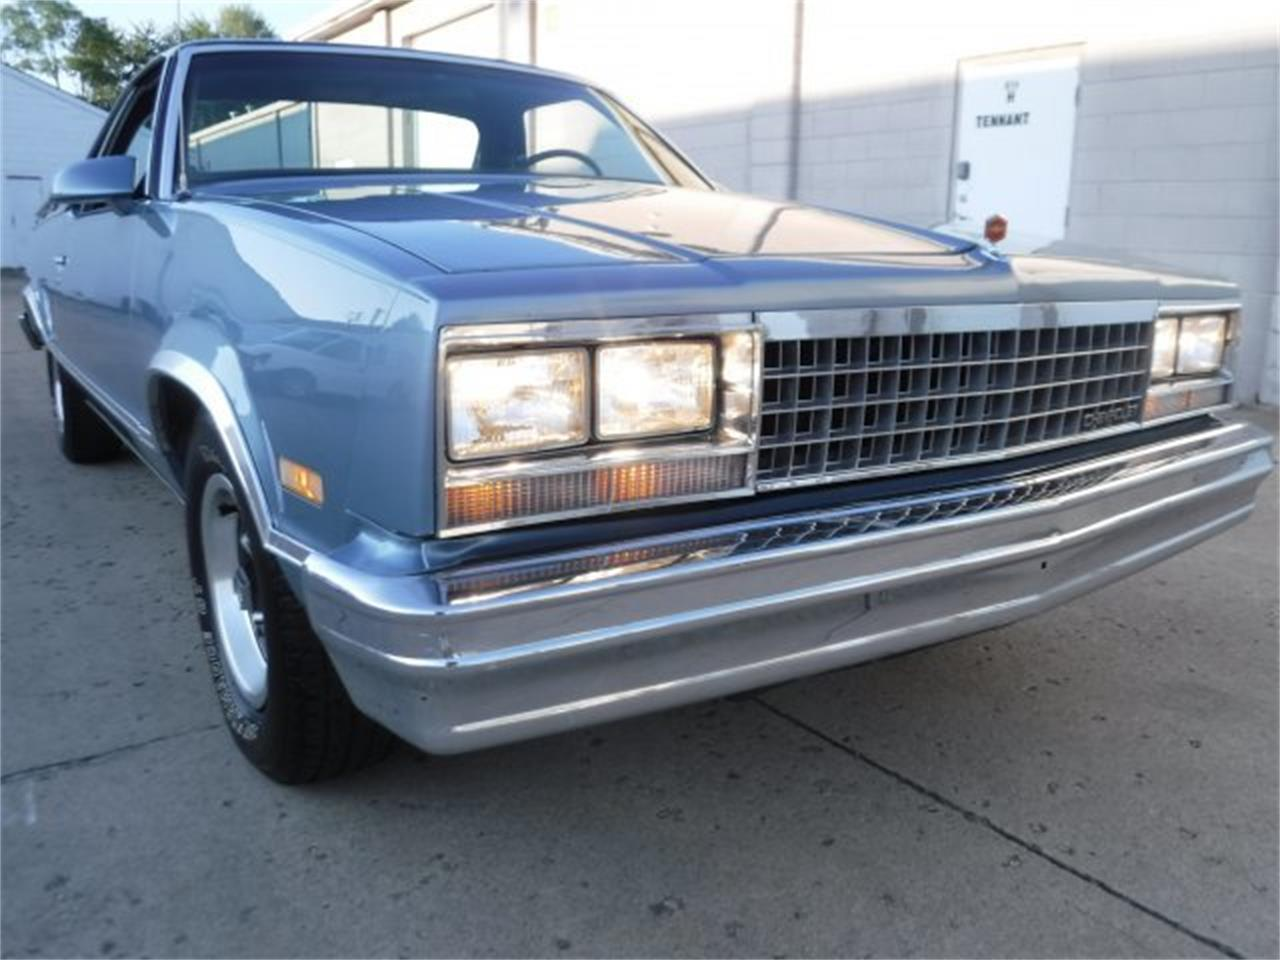 1987 Chevrolet El Camino (CC-1245763) for sale in Milford, Ohio